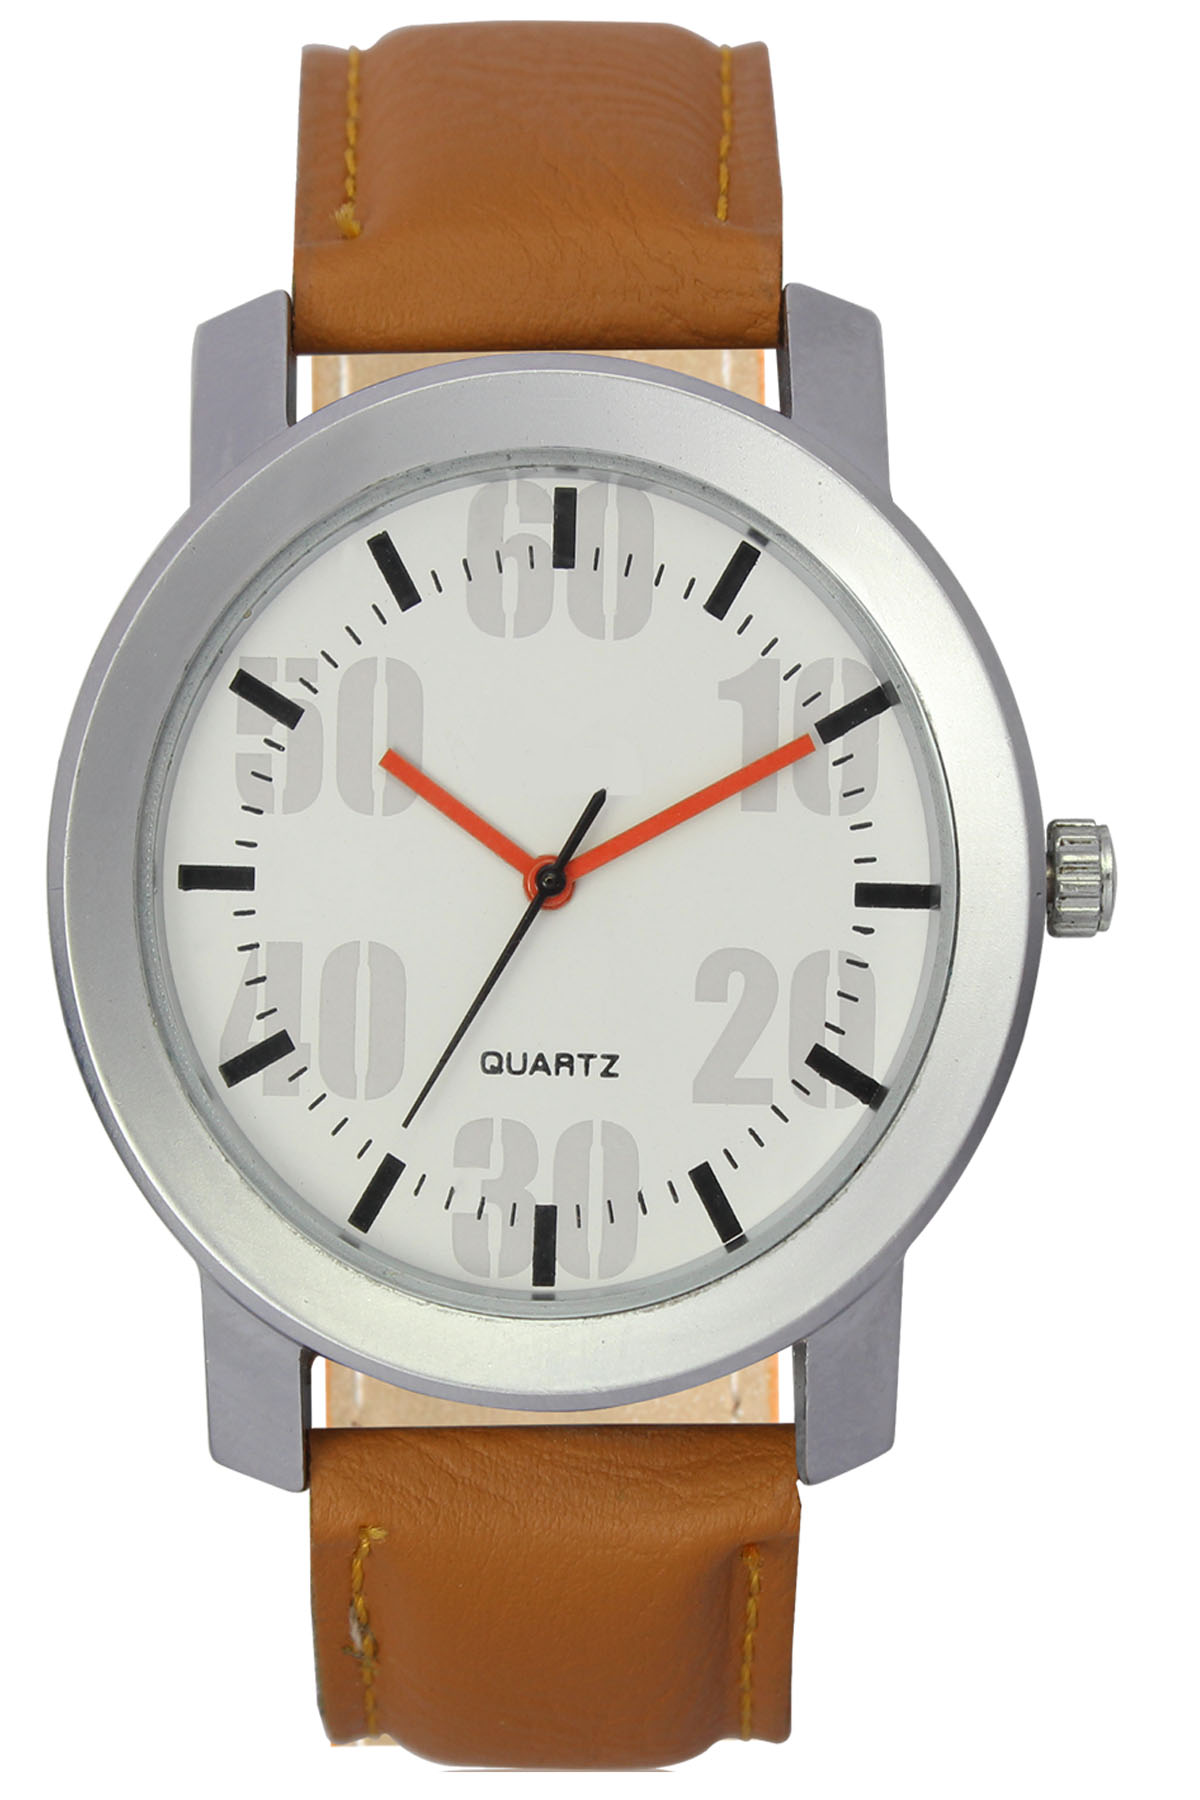 parienterprise Mens Watch Premium 40mm White Round Dial Brown Leather Strap And Brown Storm Mens Analog Watch